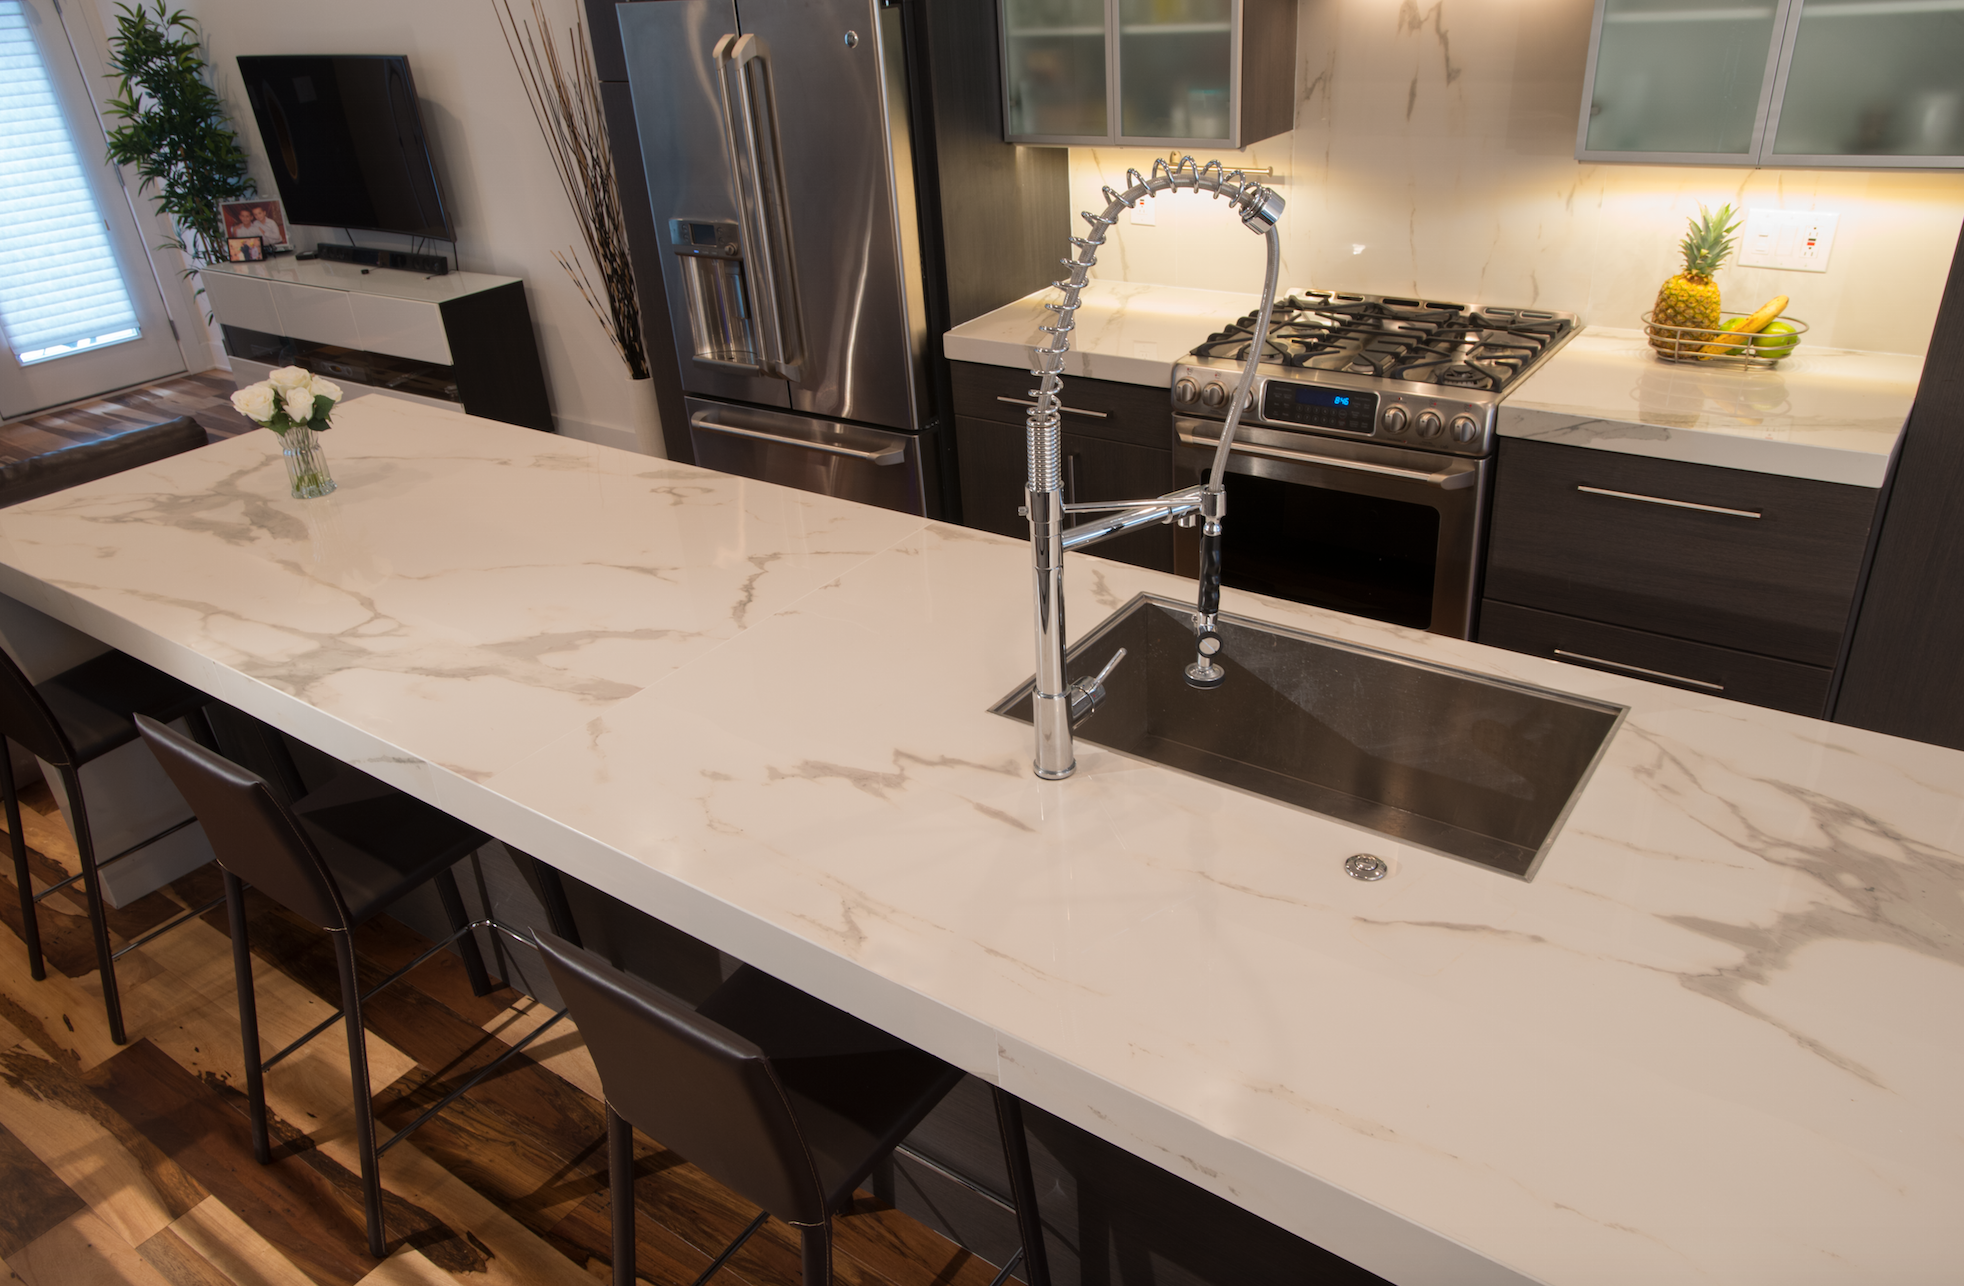 Talking Tile From Coverings2015 Tile Countertops Kitchen